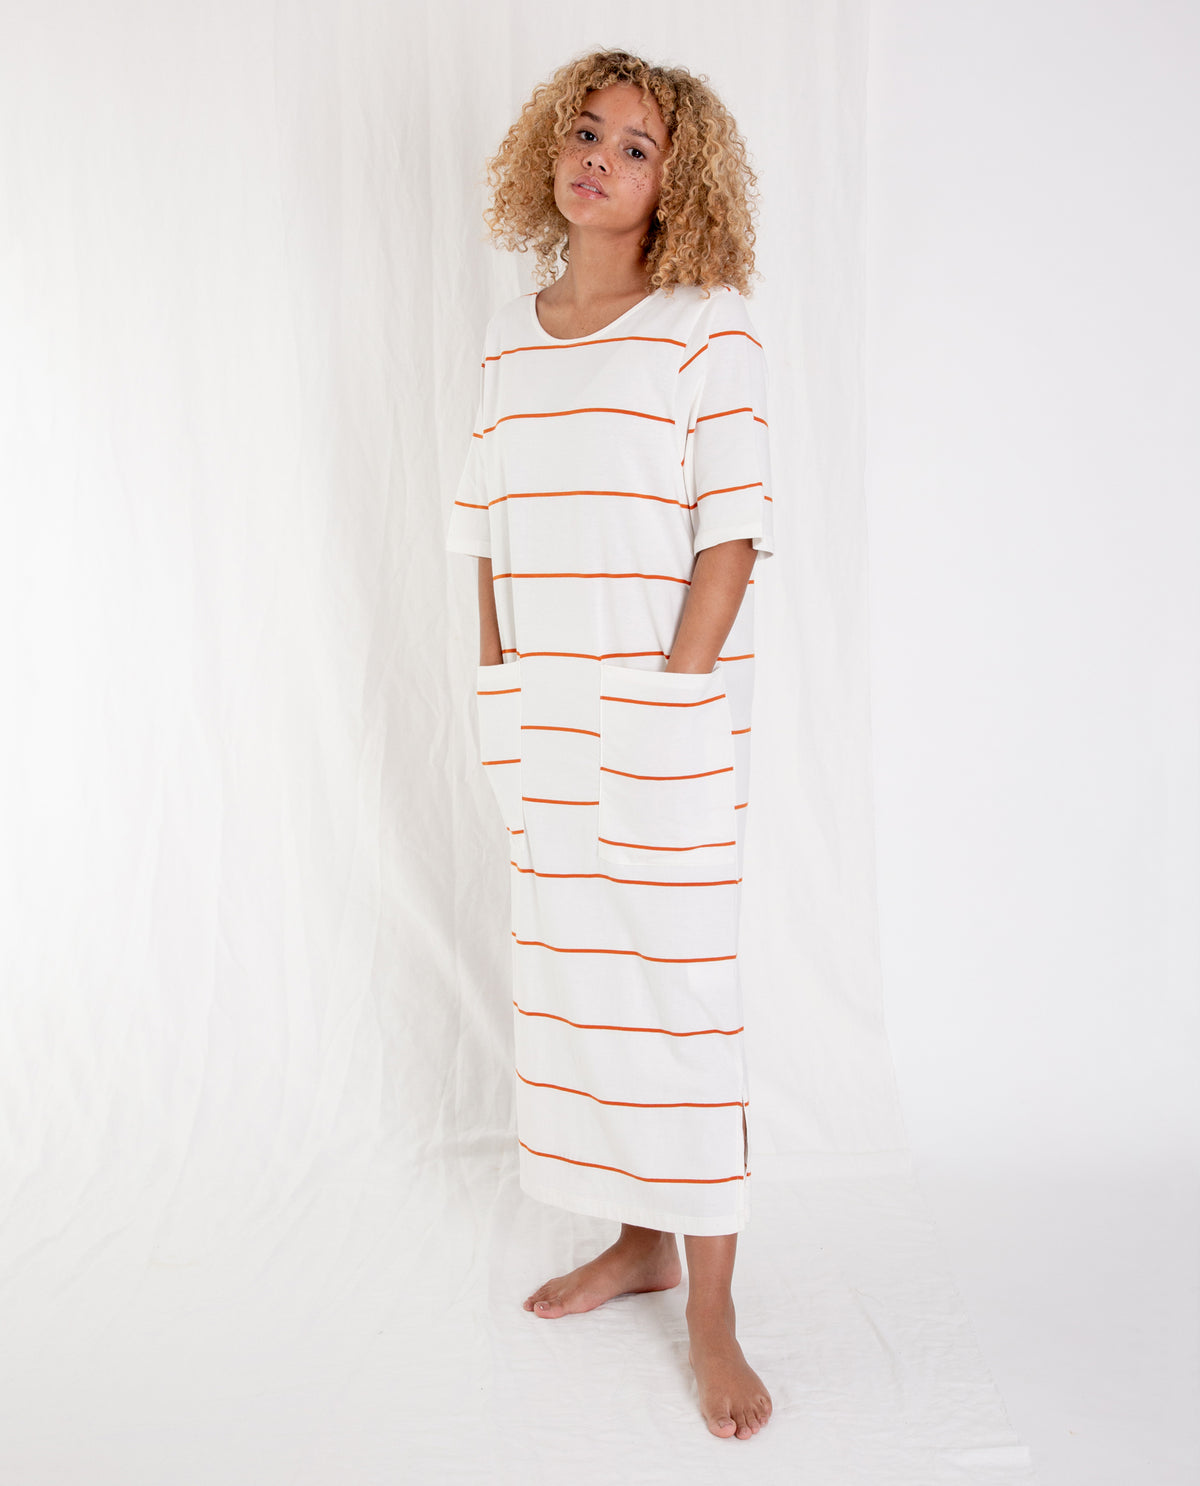 LILLIAN-SUE Organic Cotton Dress In Off White And Madder